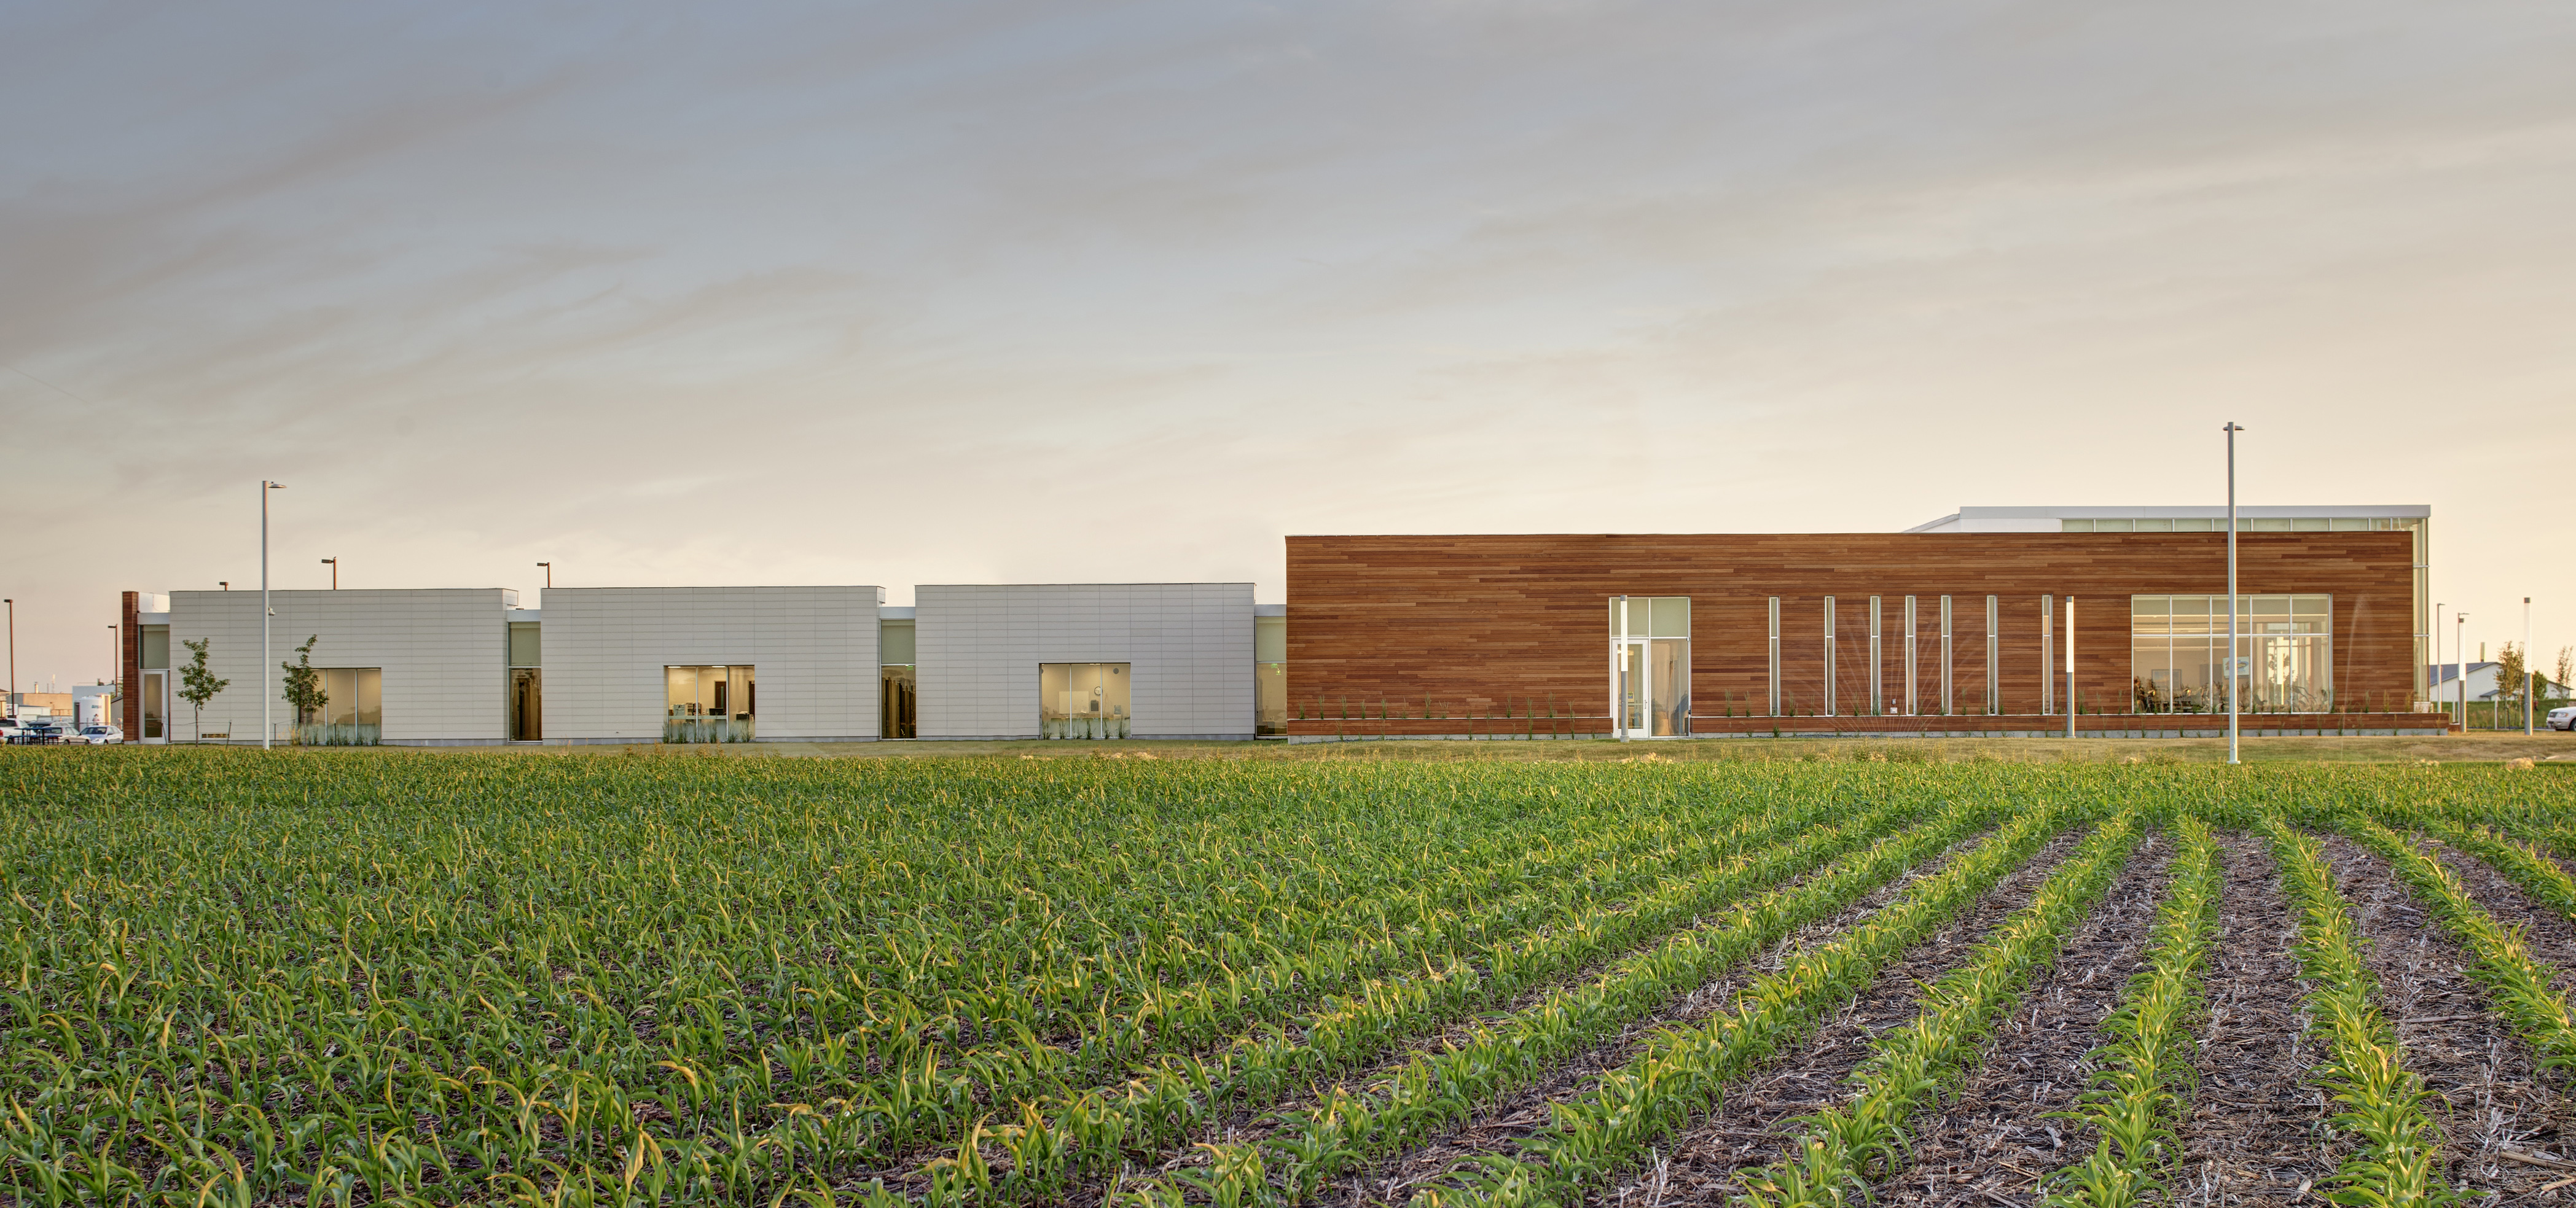 AIA Zombie Proof House Design With Farm Html on